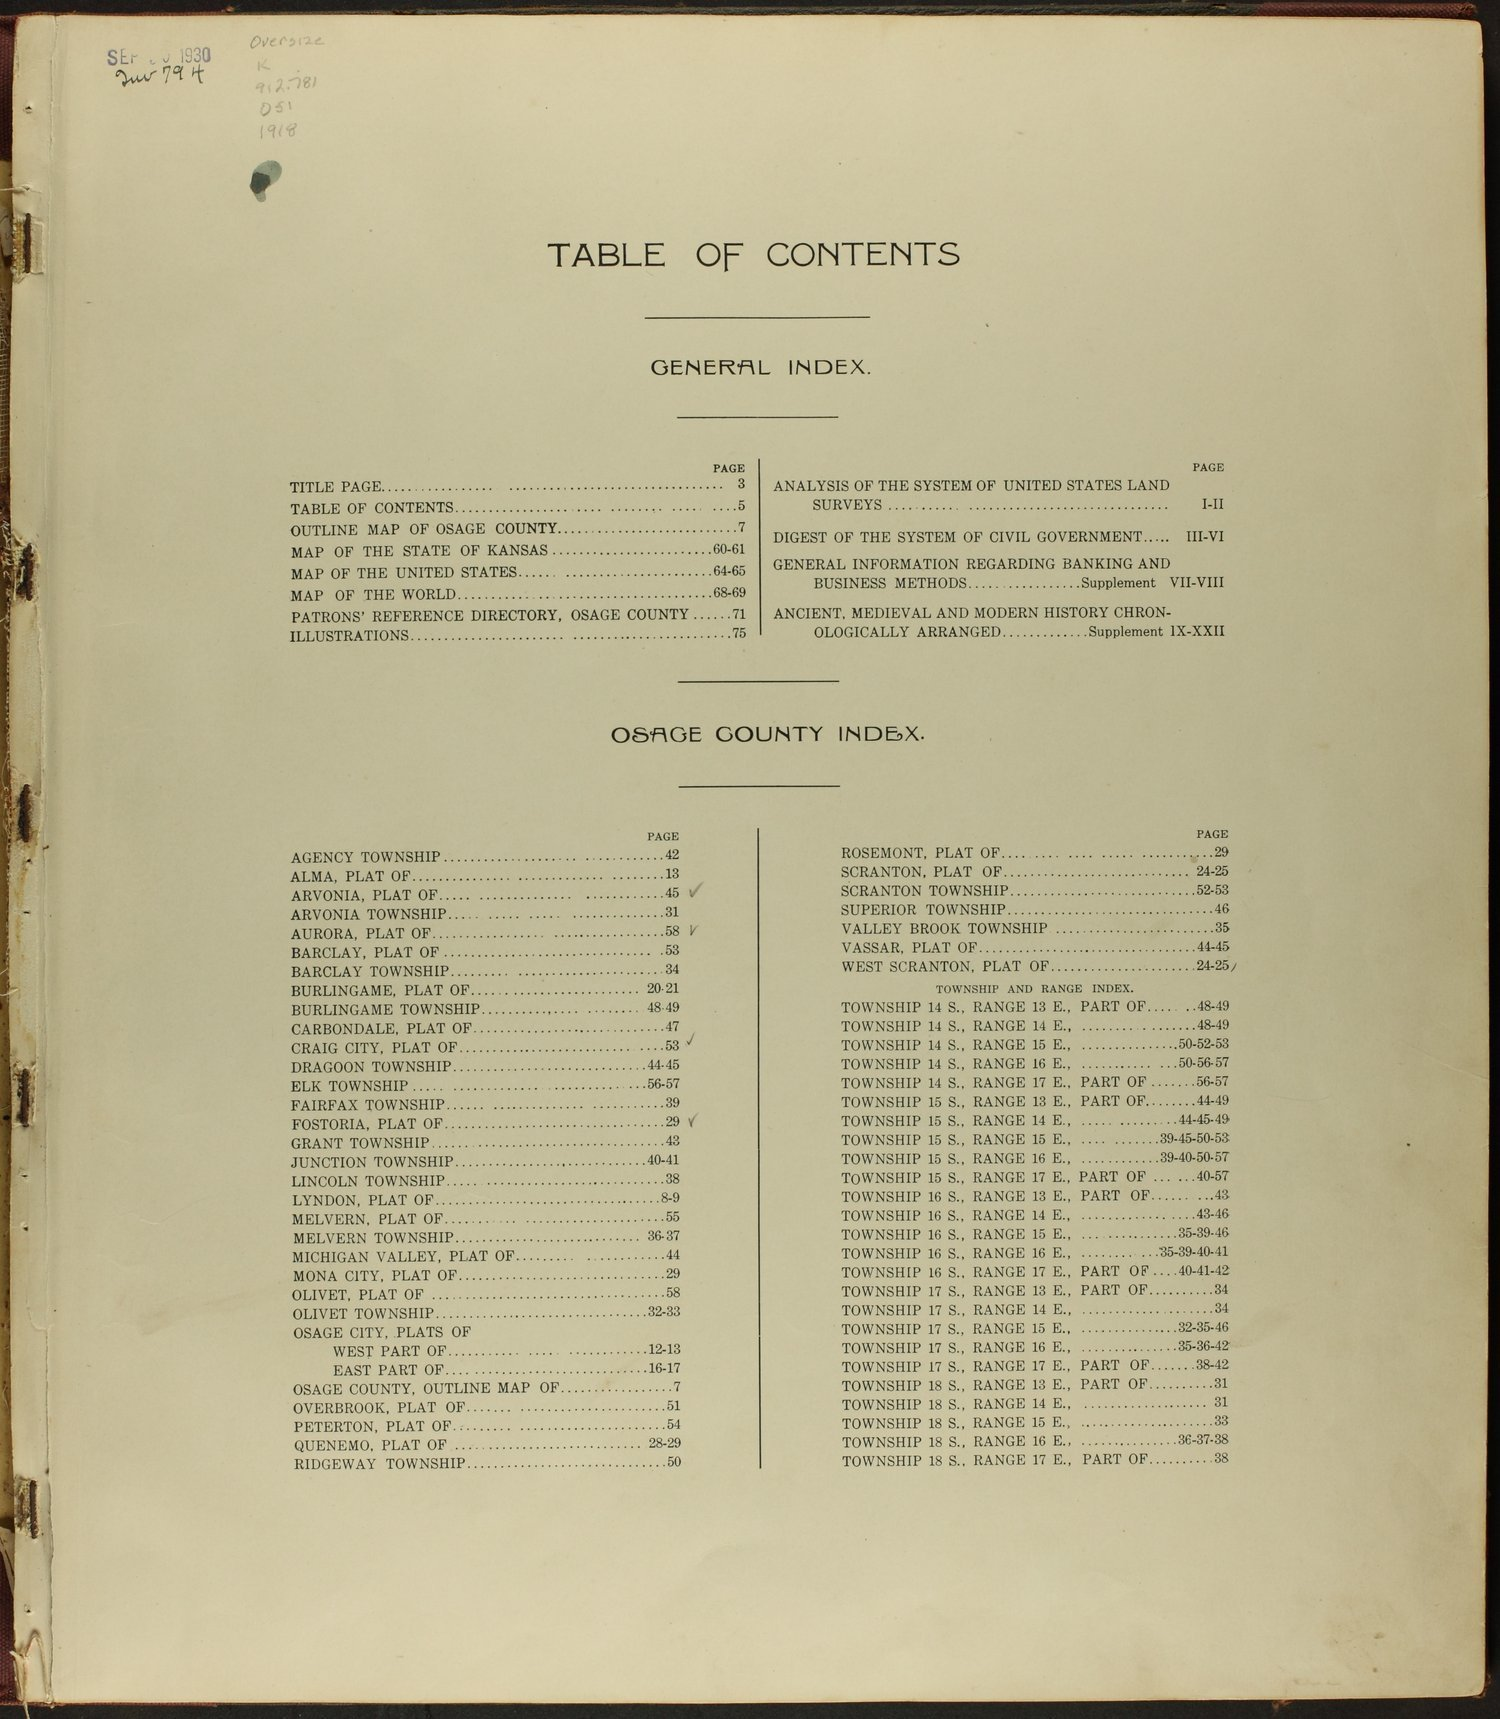 Standard atlas of Osage County, Kansas - Table of Contents